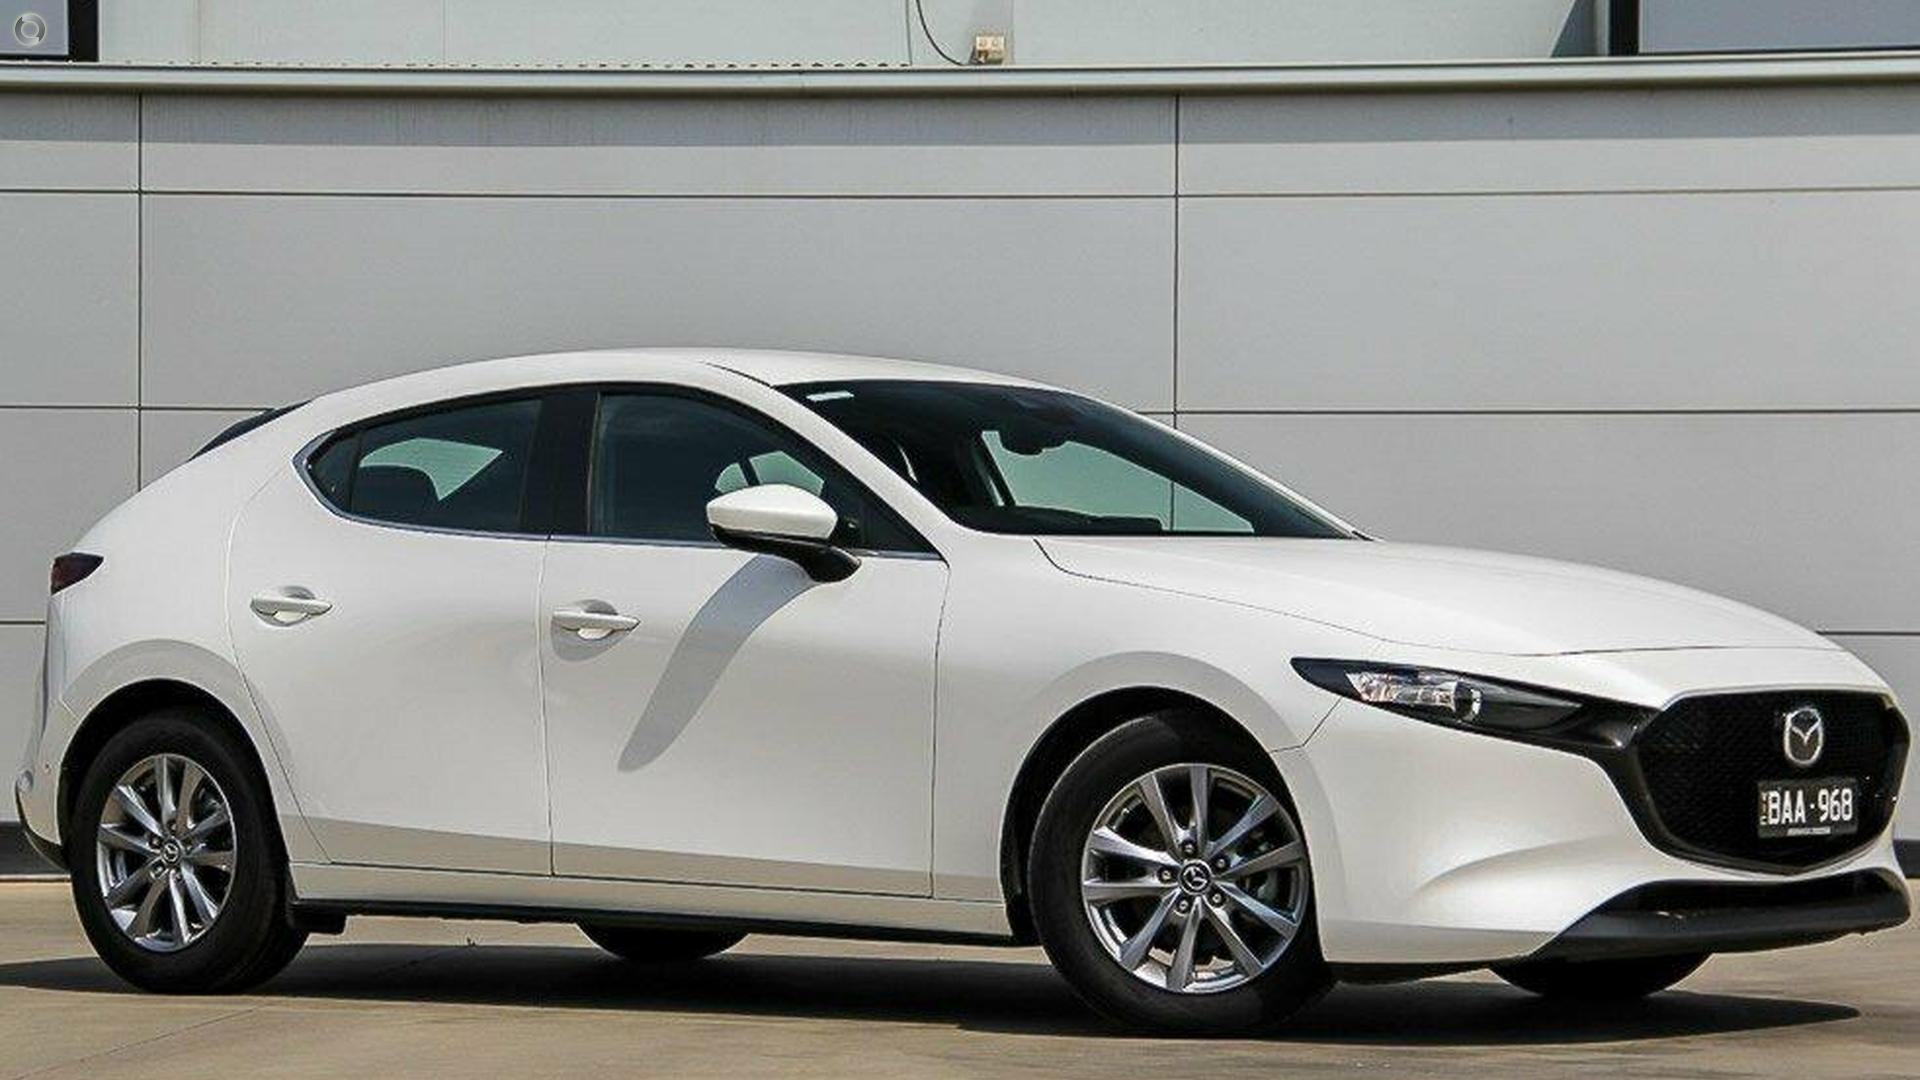 2019 Mazda 3 G20 Pure BP Series